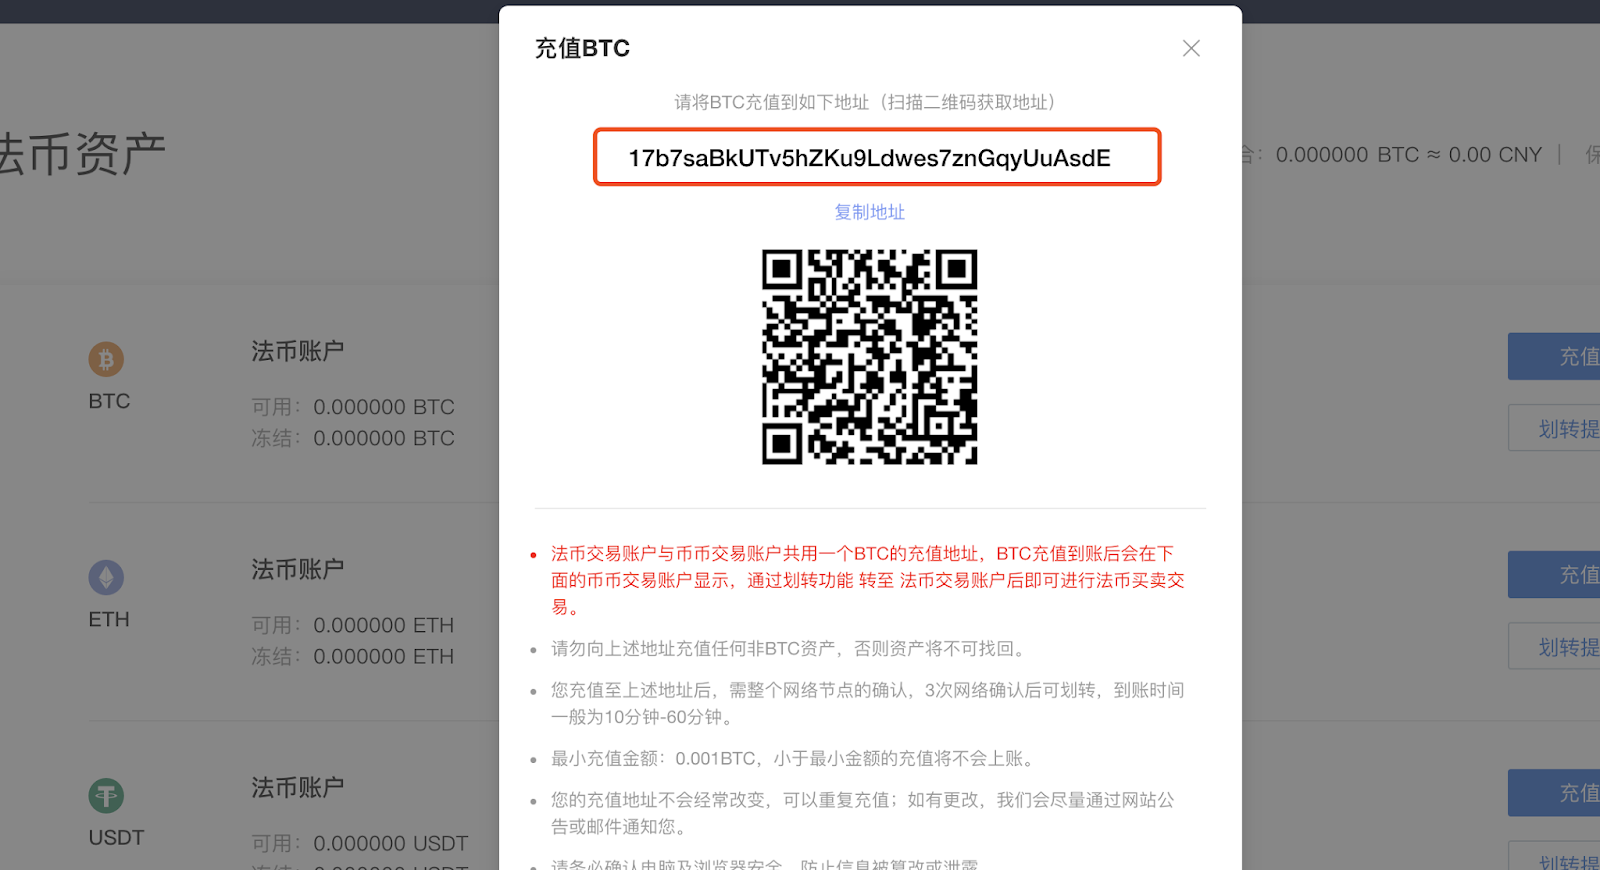 how to view my bitcoin address?